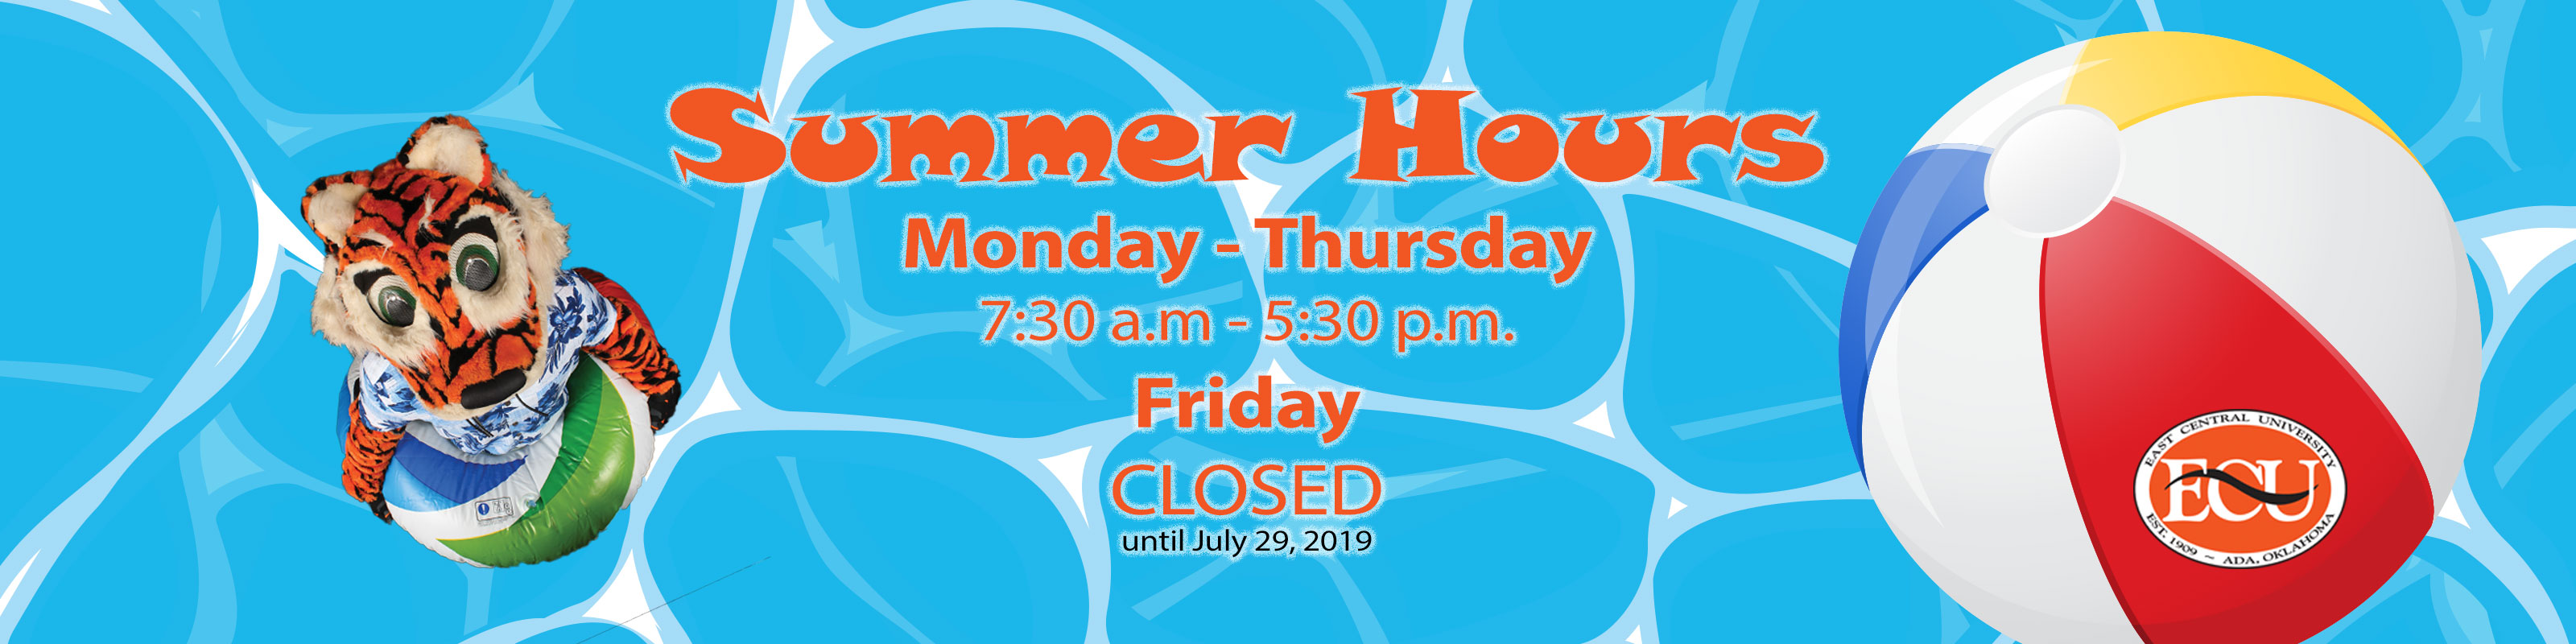 Summer Hours Monday - Thursday 7:30 a.m - 5:30 p.m. Friday CLOSED until July 29, 2019